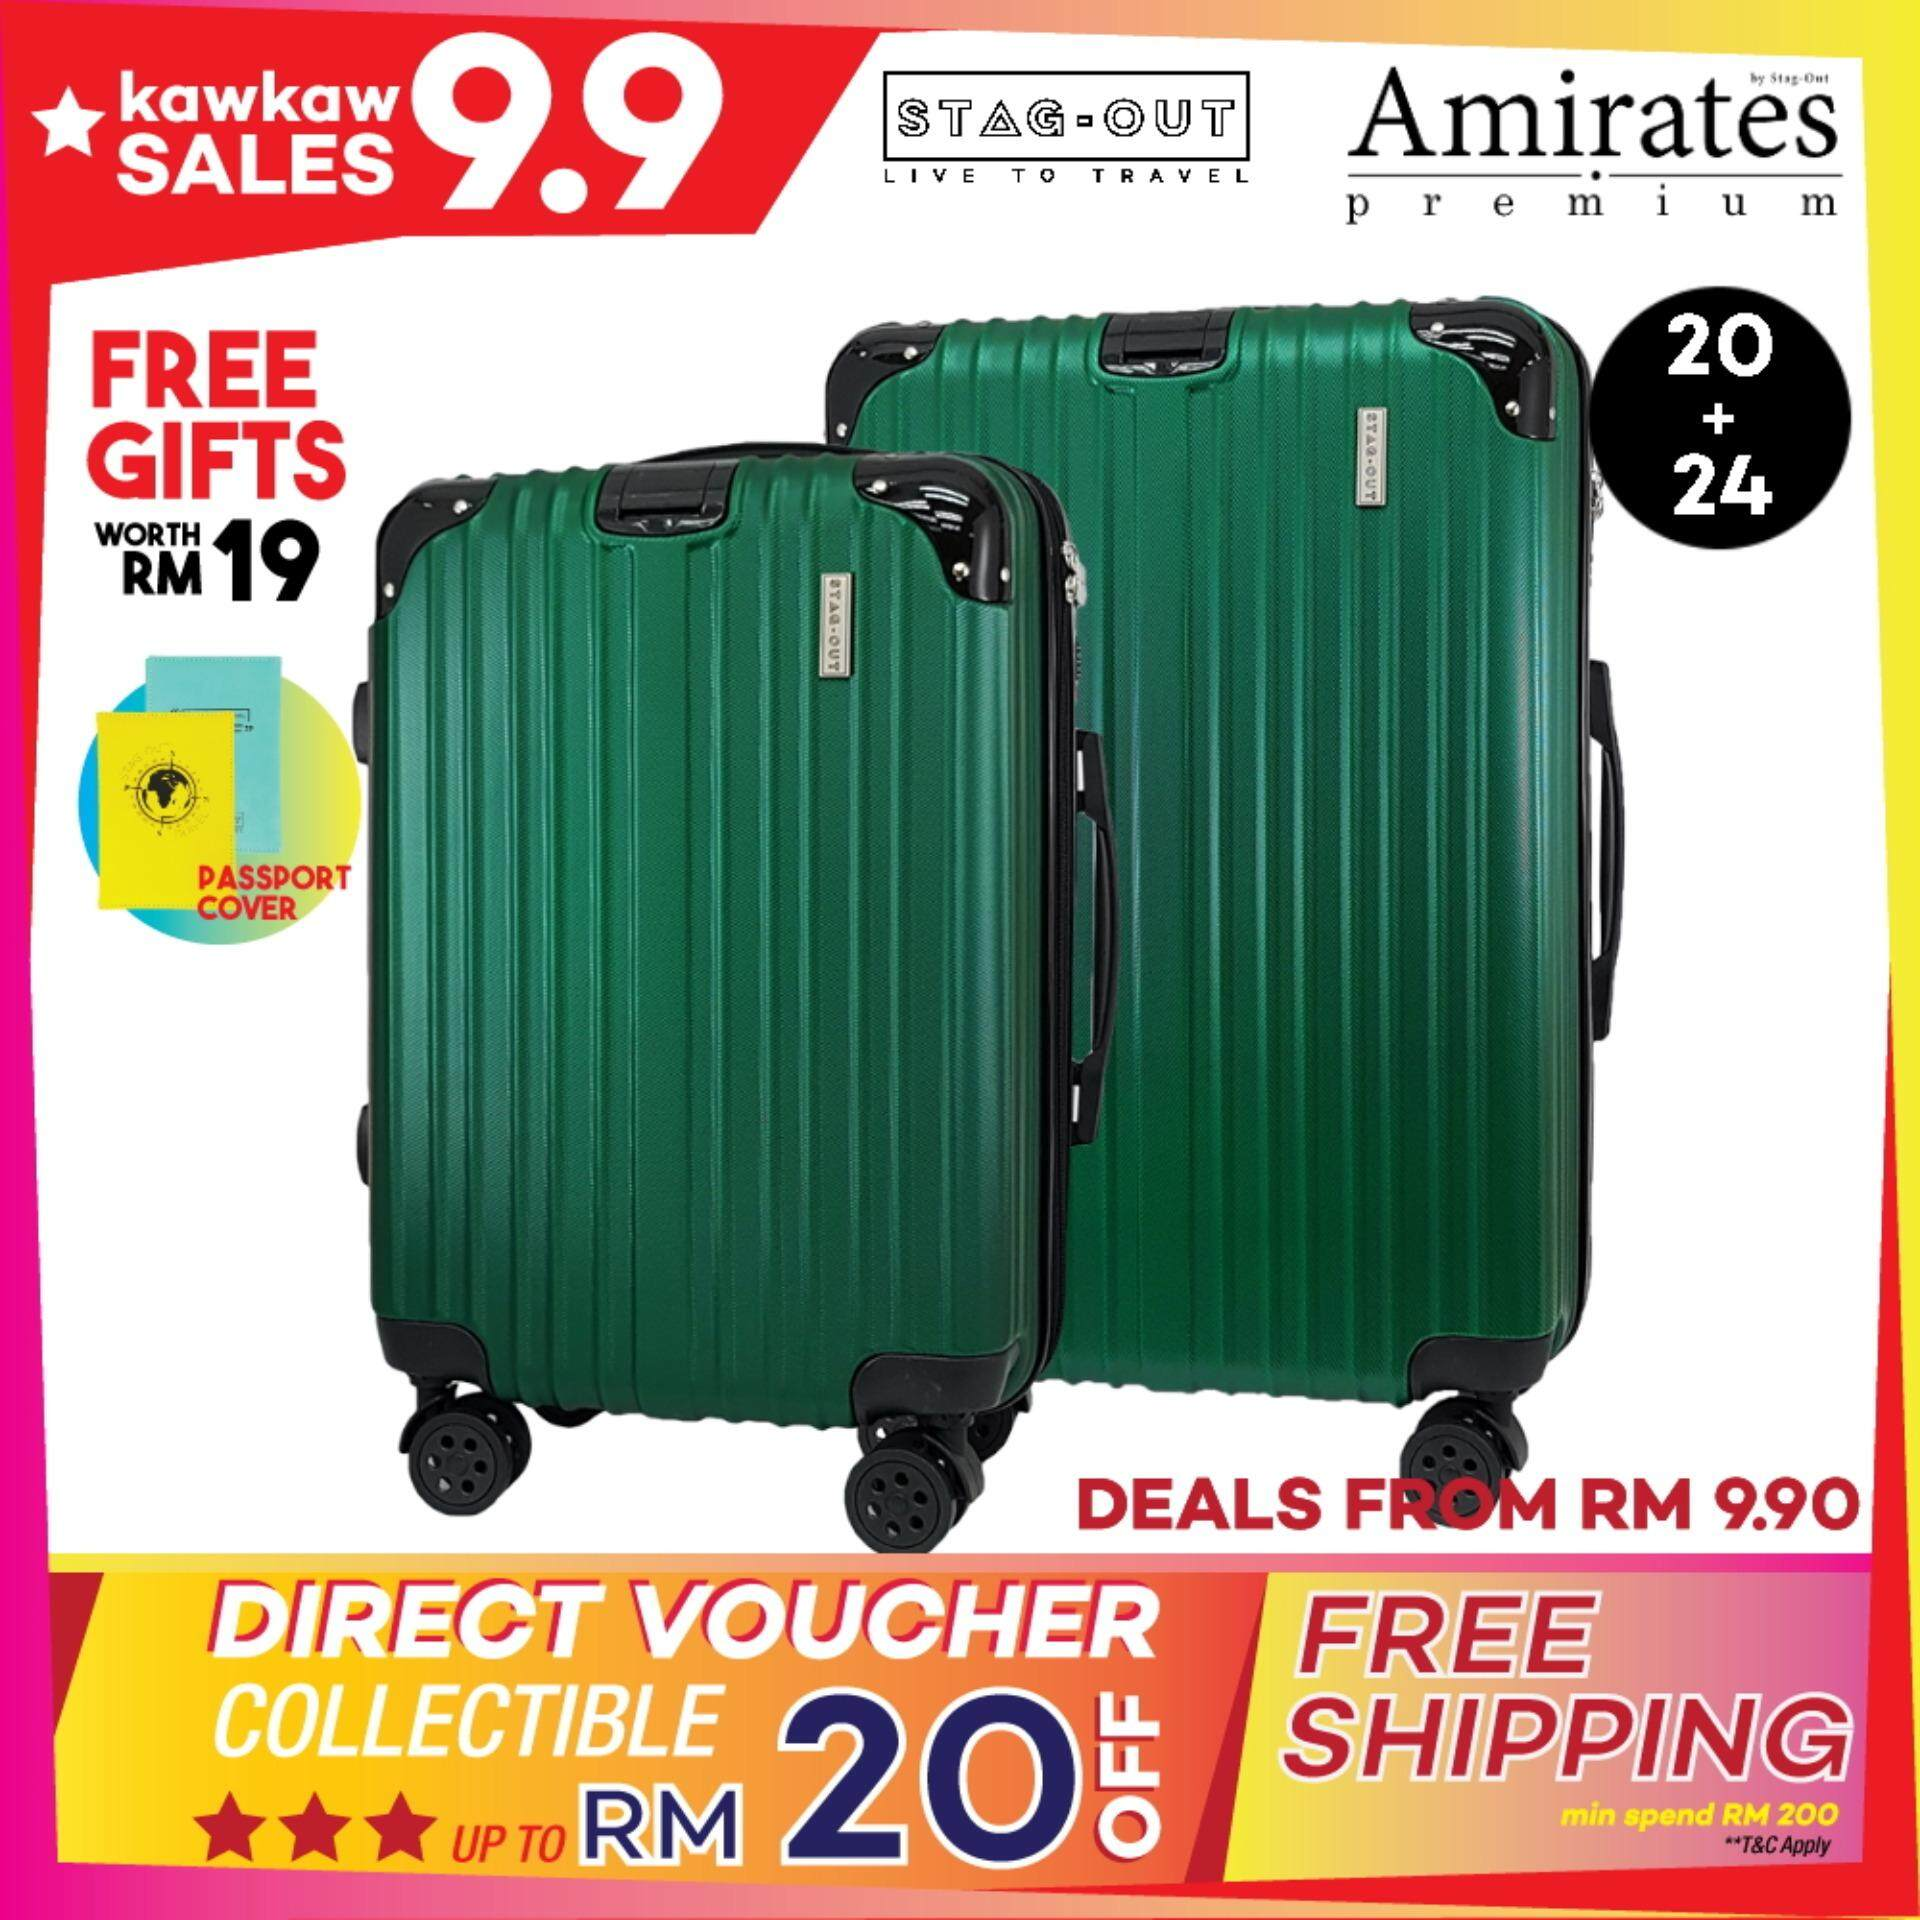 [Stag-Out] Amirates Premium 2in1 Protector ABS Hardcase Travel Luggage Set  Bag Suitcase